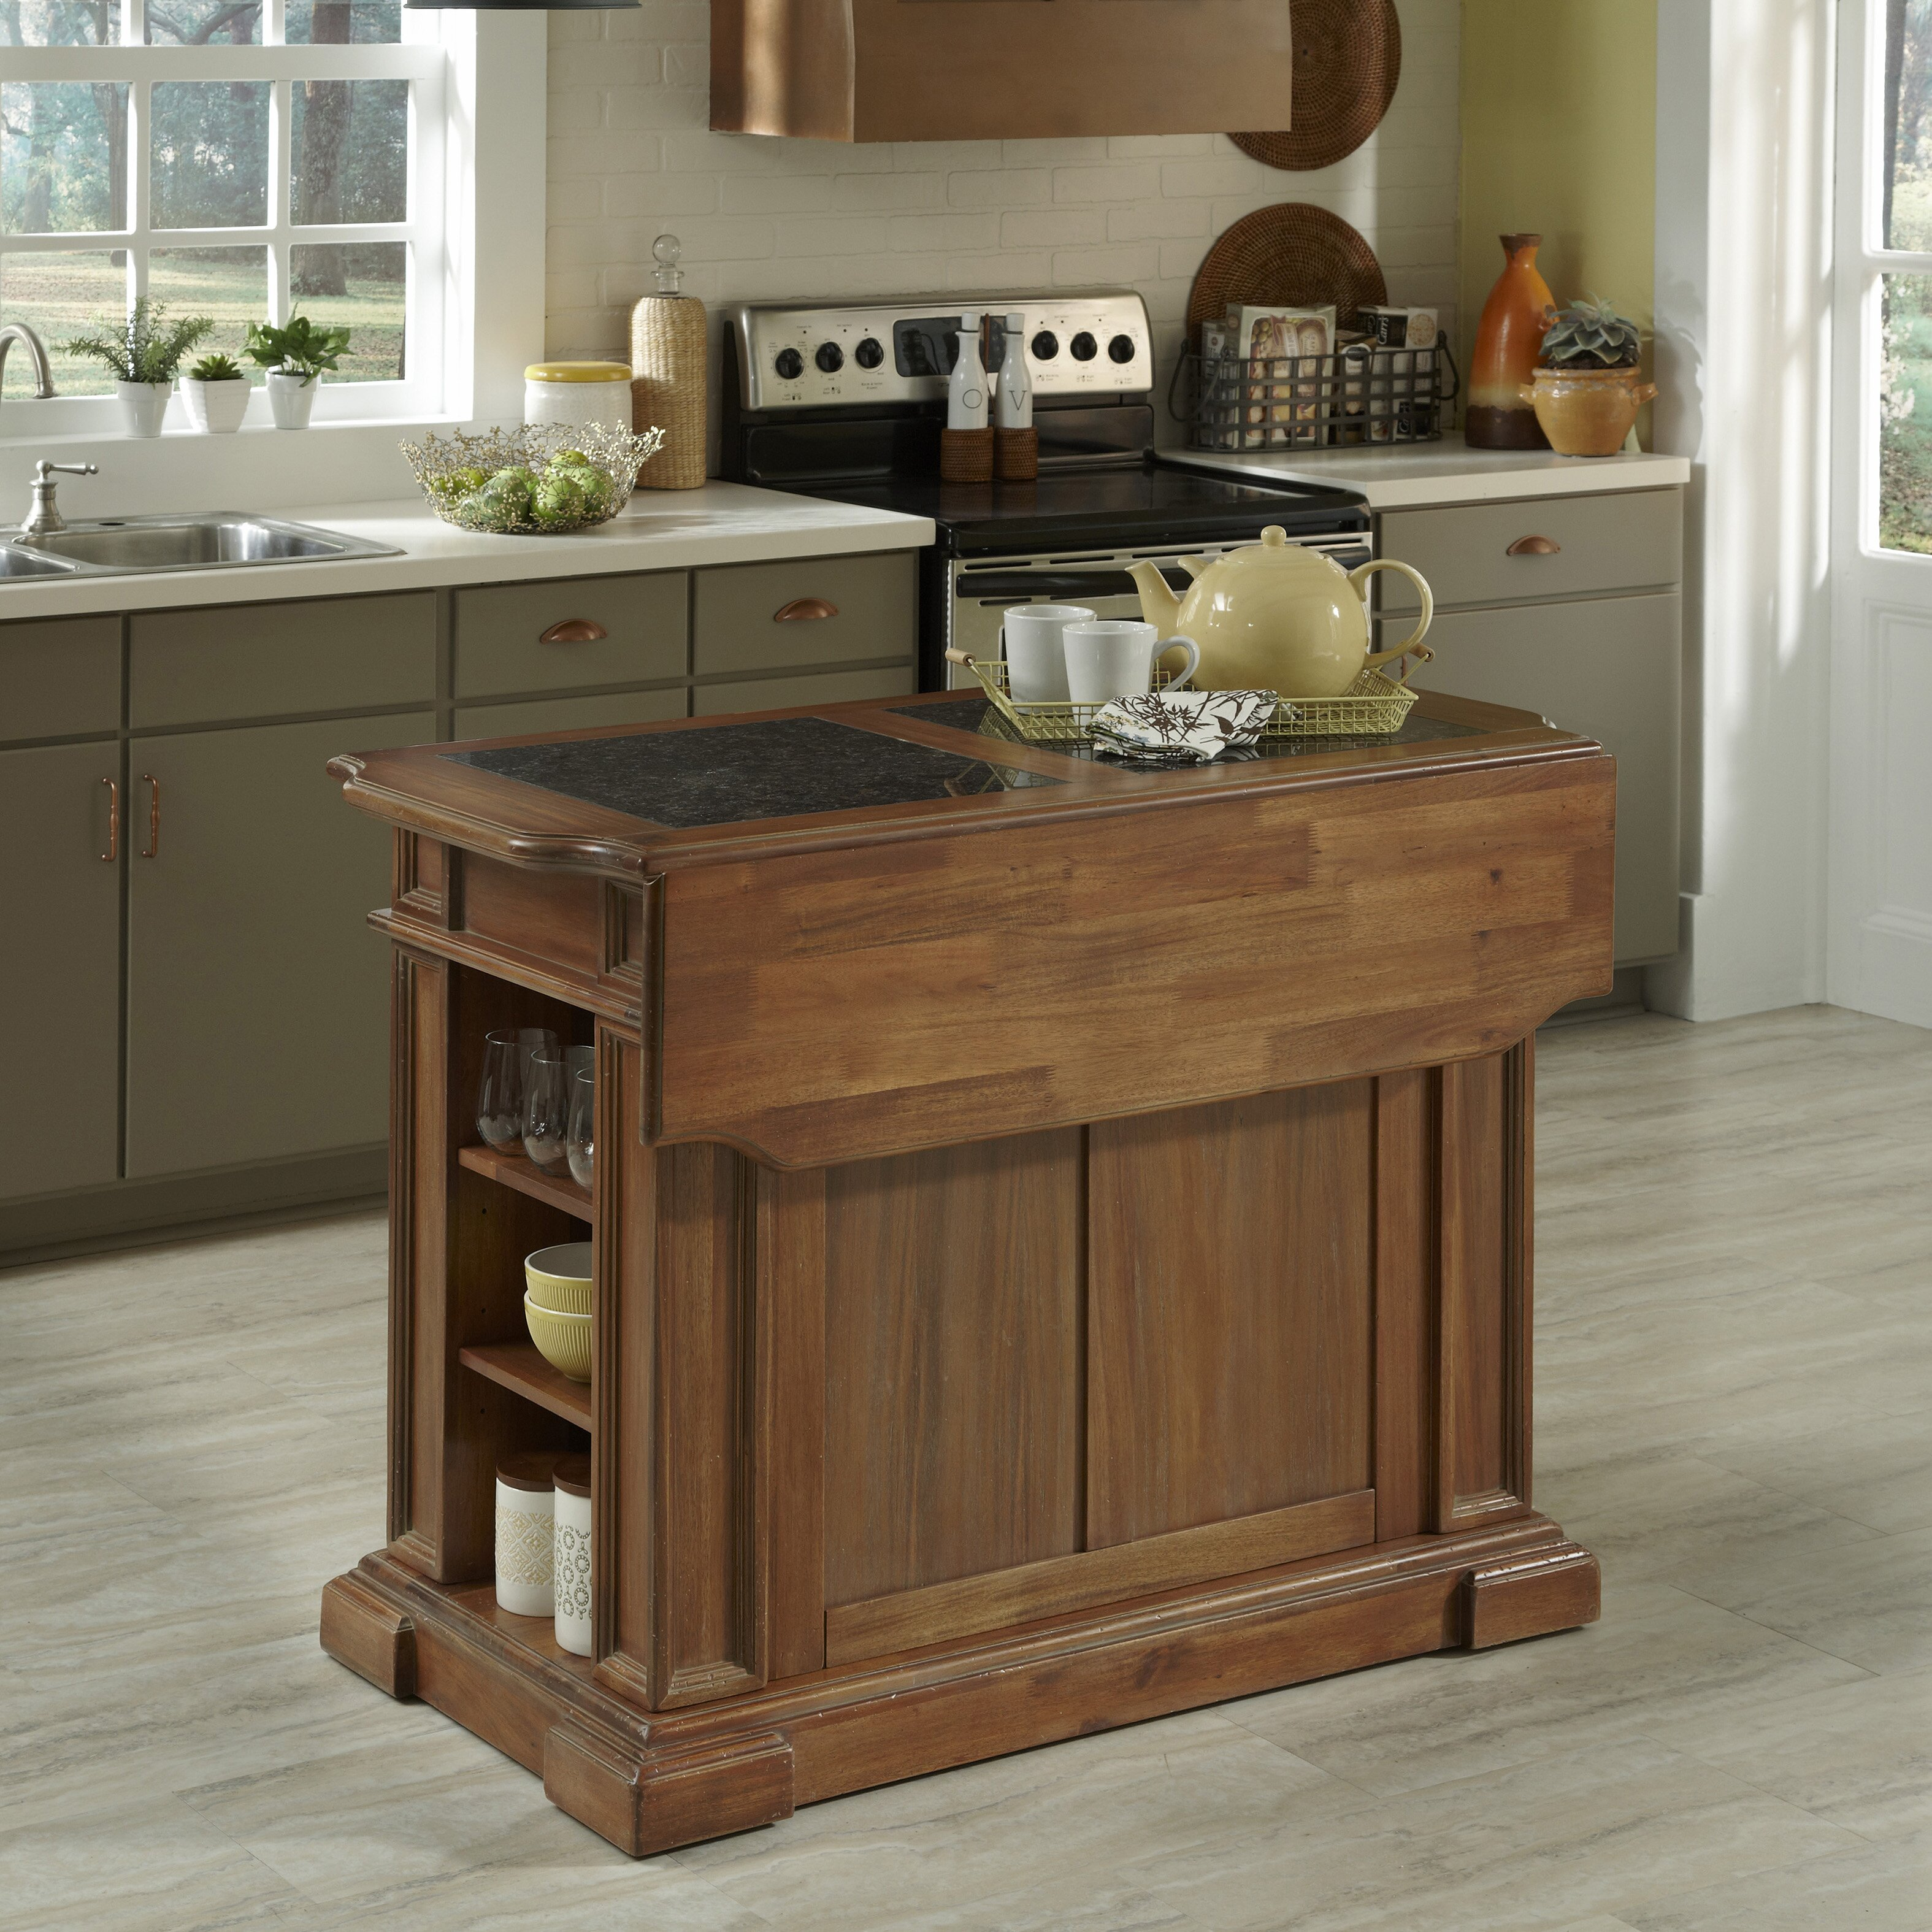 americana kitchen island with granite top wayfair home styles americana kitchen island with granite top